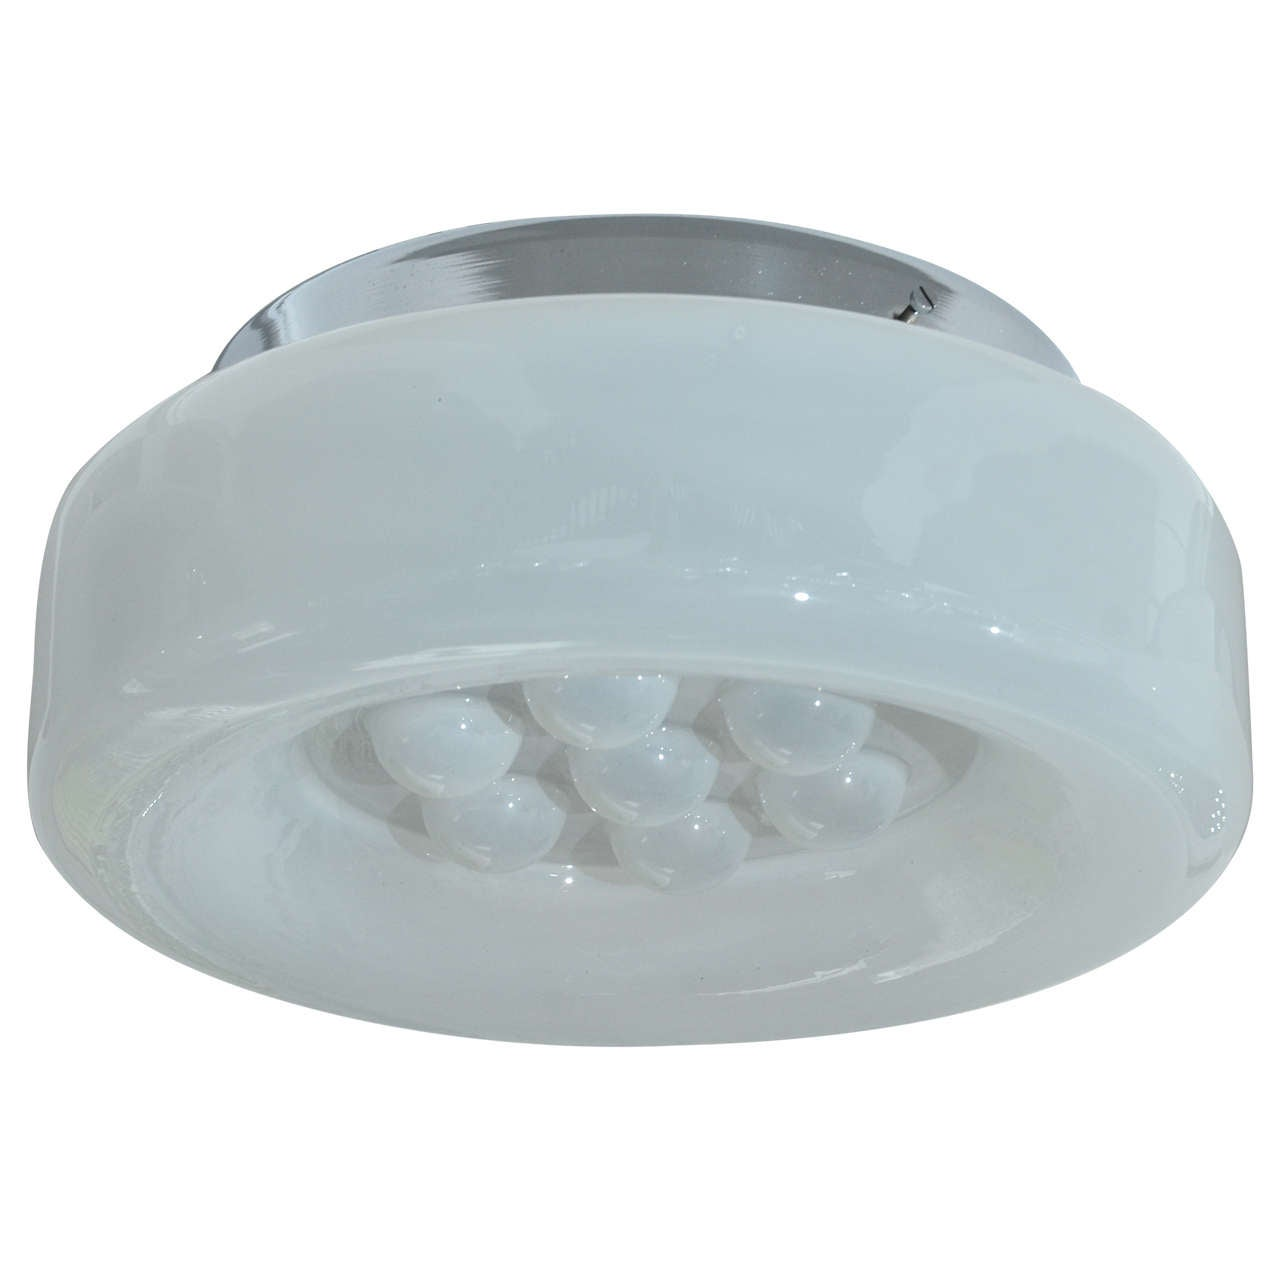 Lightly Frosted Flush Mount Fixture with Reverse Dimple Detail by Mazzega